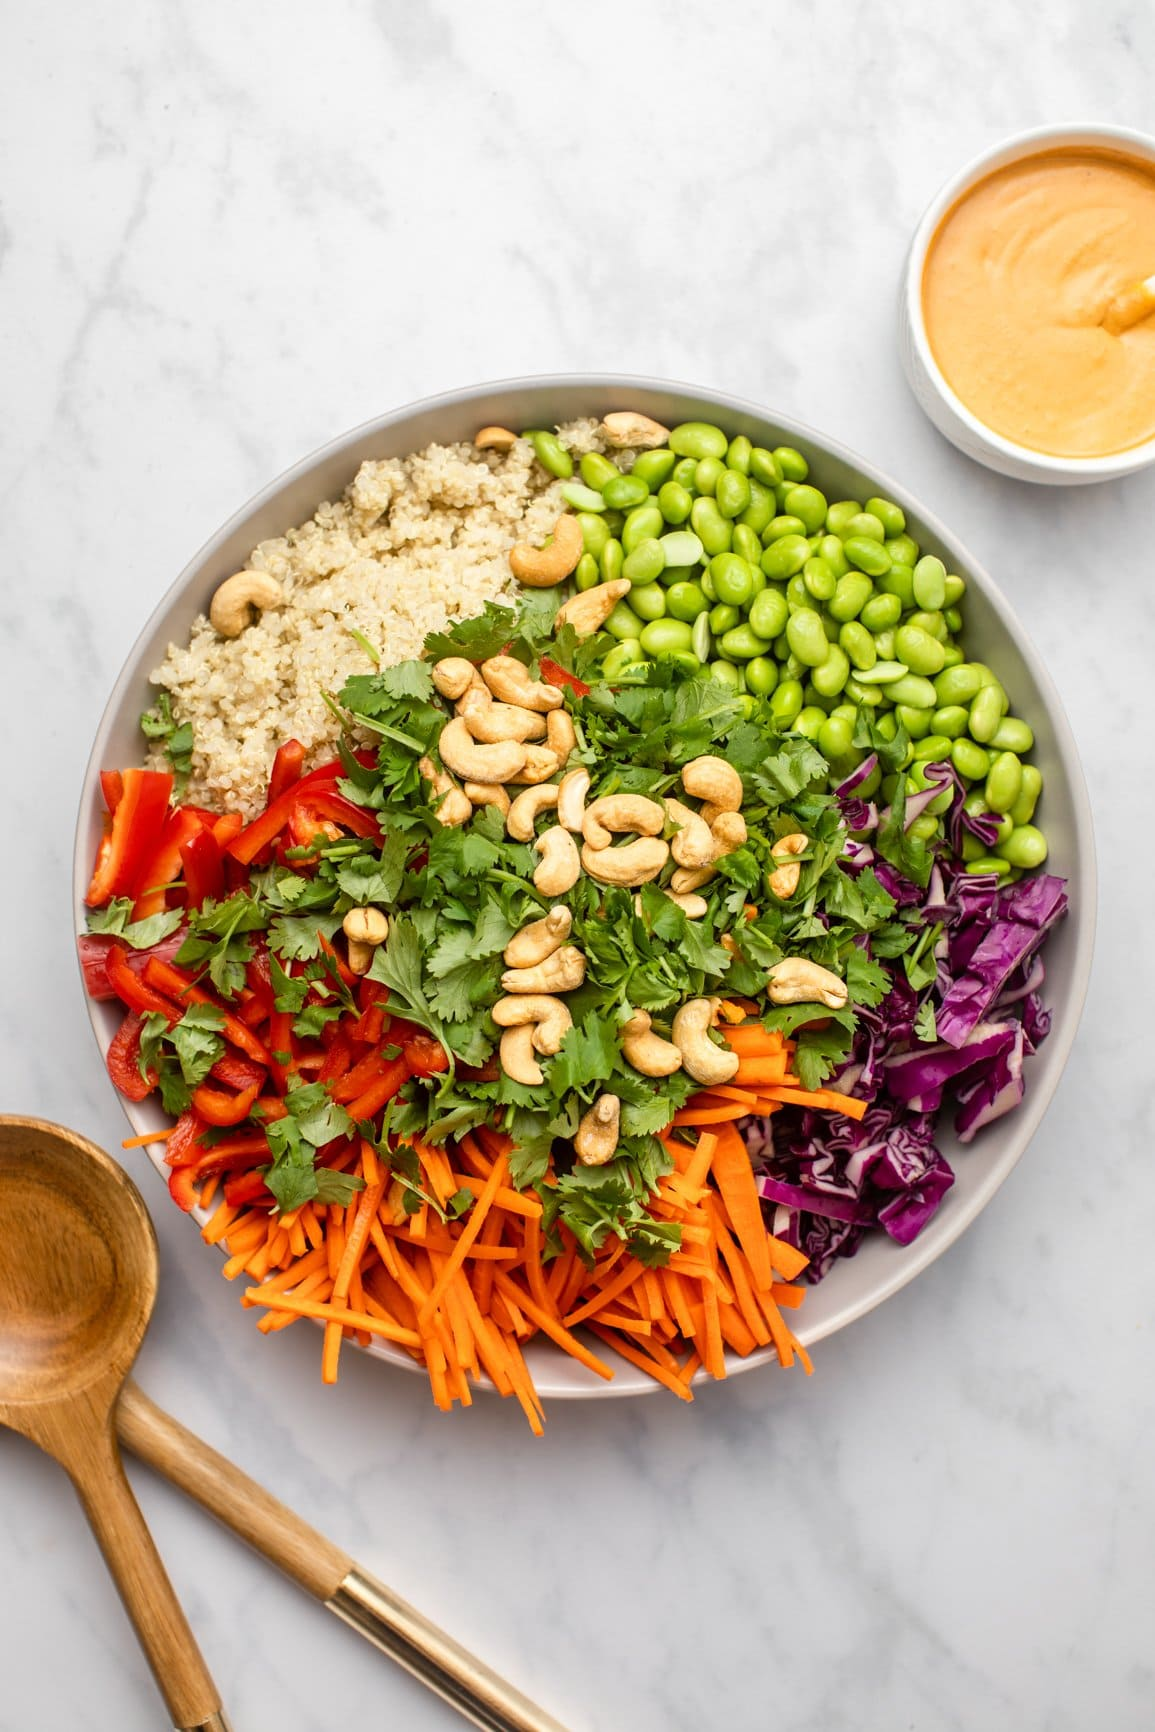 ingredients for rainbow quinoa salad organized in large serving bowl before mixing together with dressing on the side